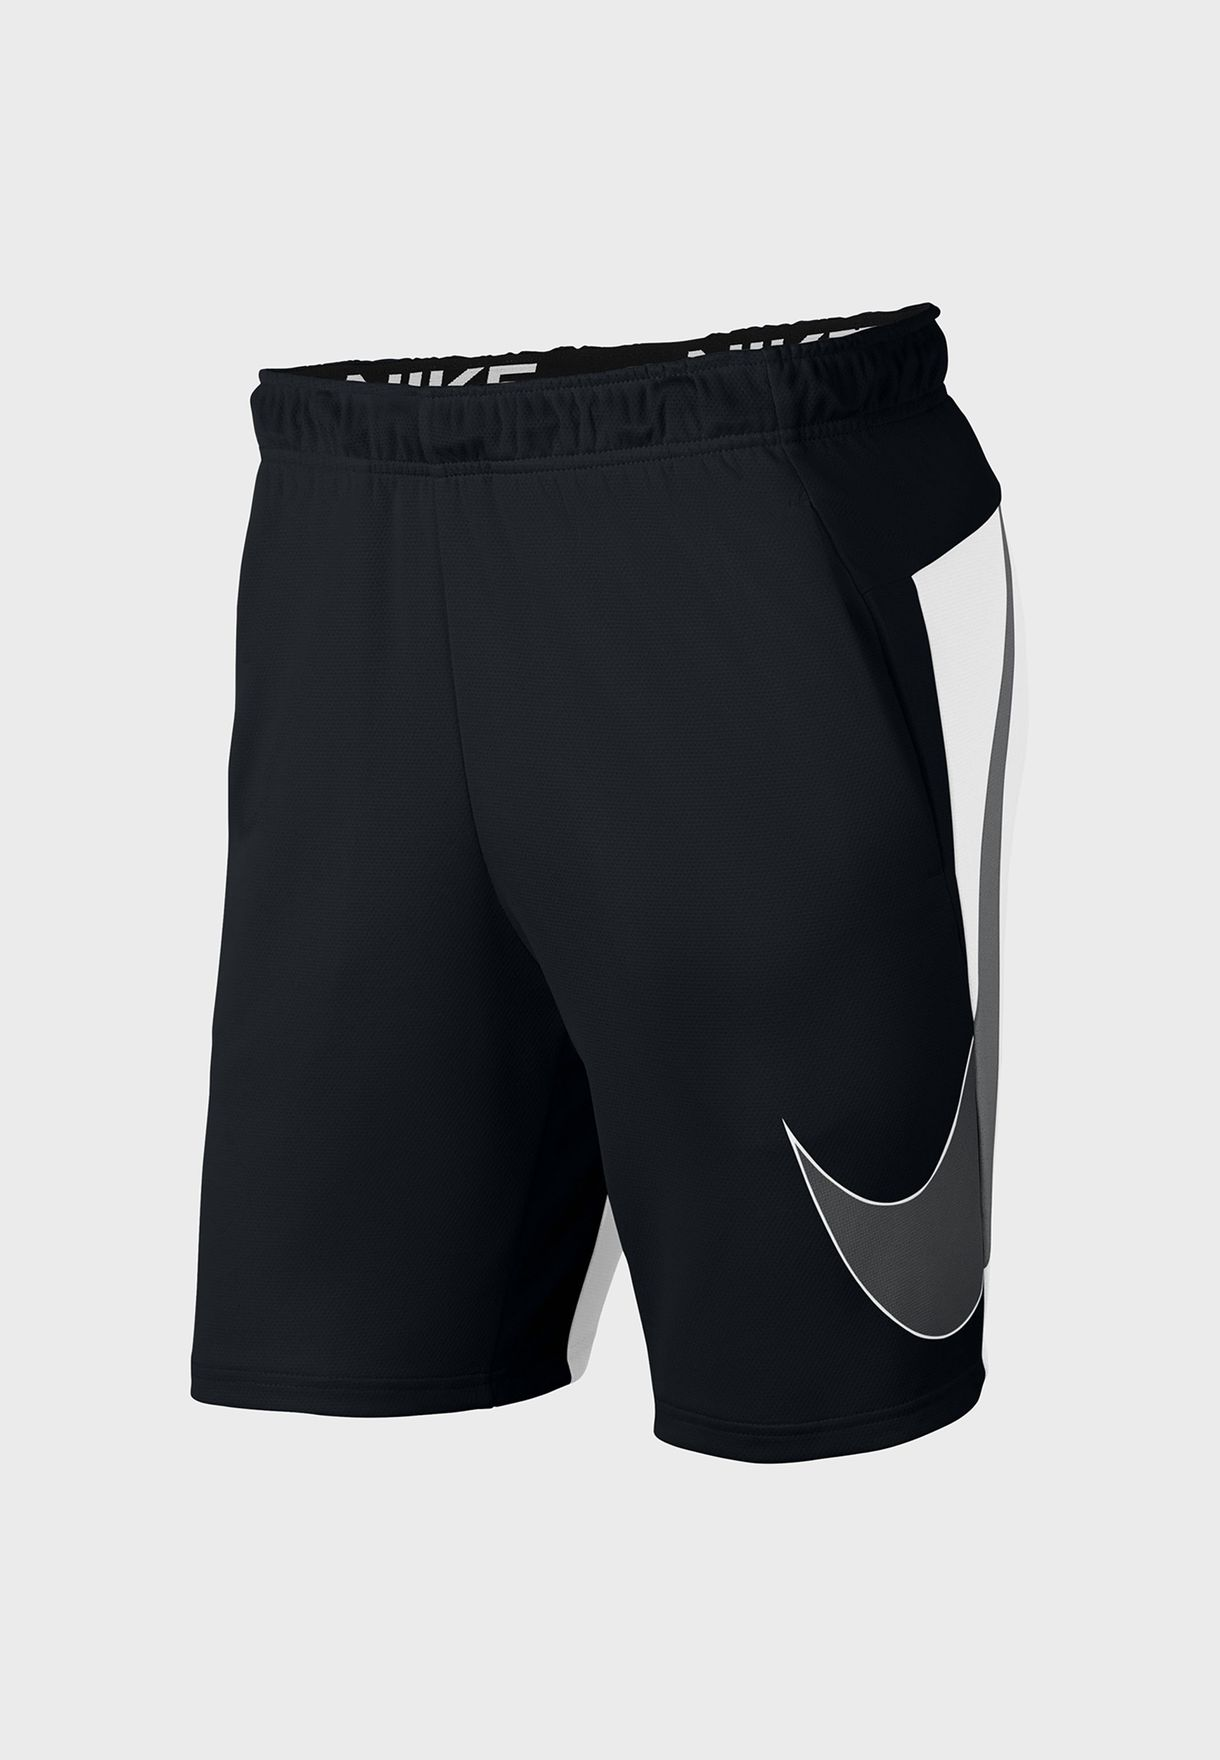 Dri-FIT 5.0 Graphic Shorts